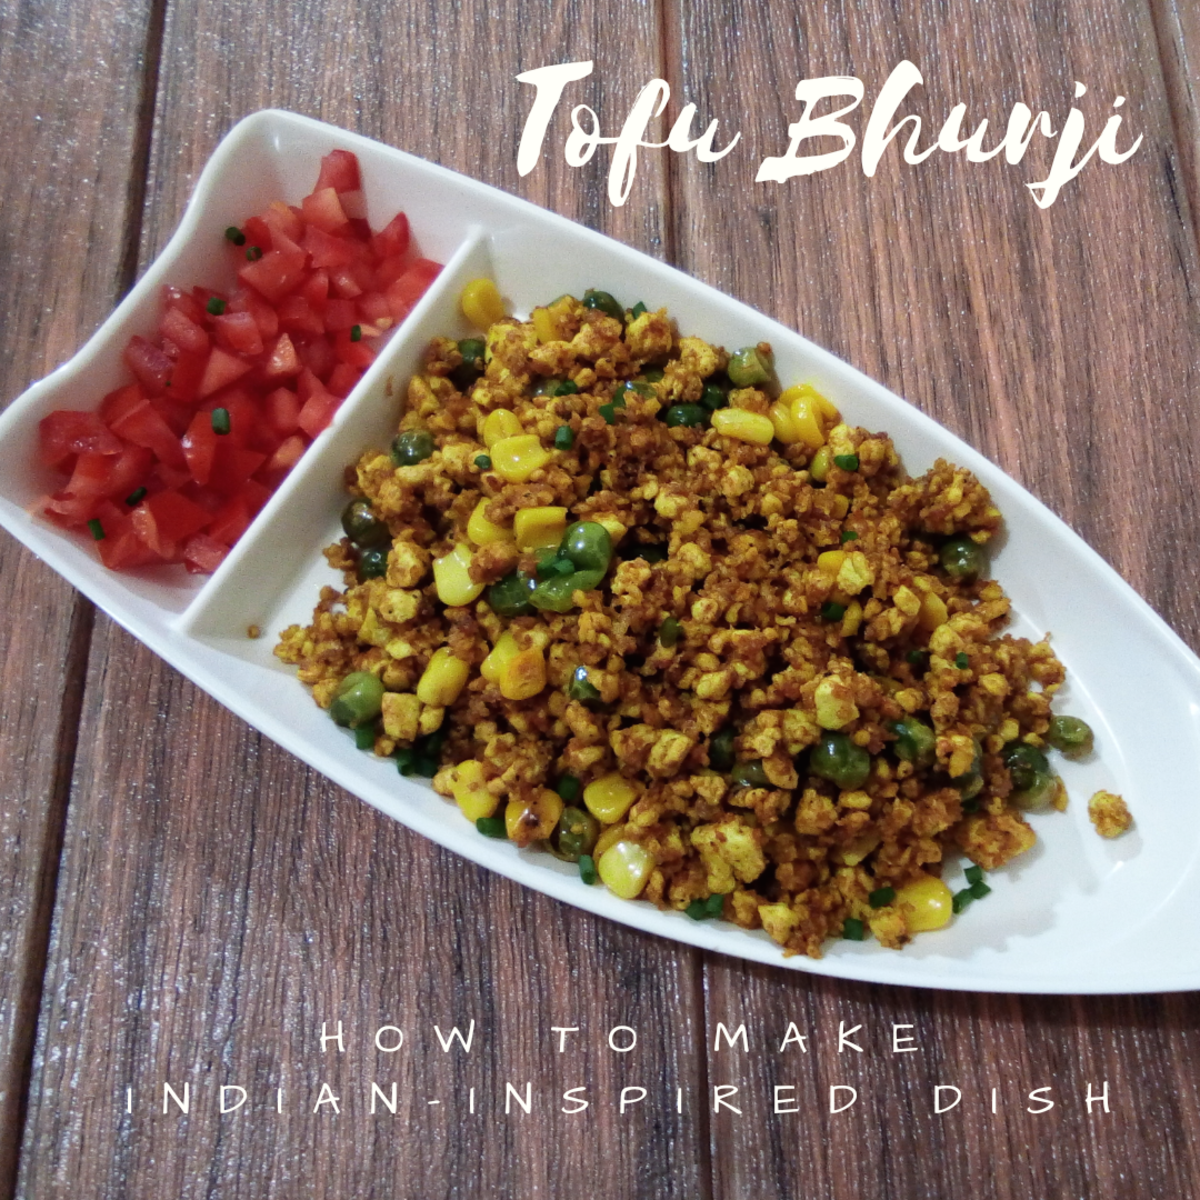 how to make tofu bhurji an Indian-insipred dish